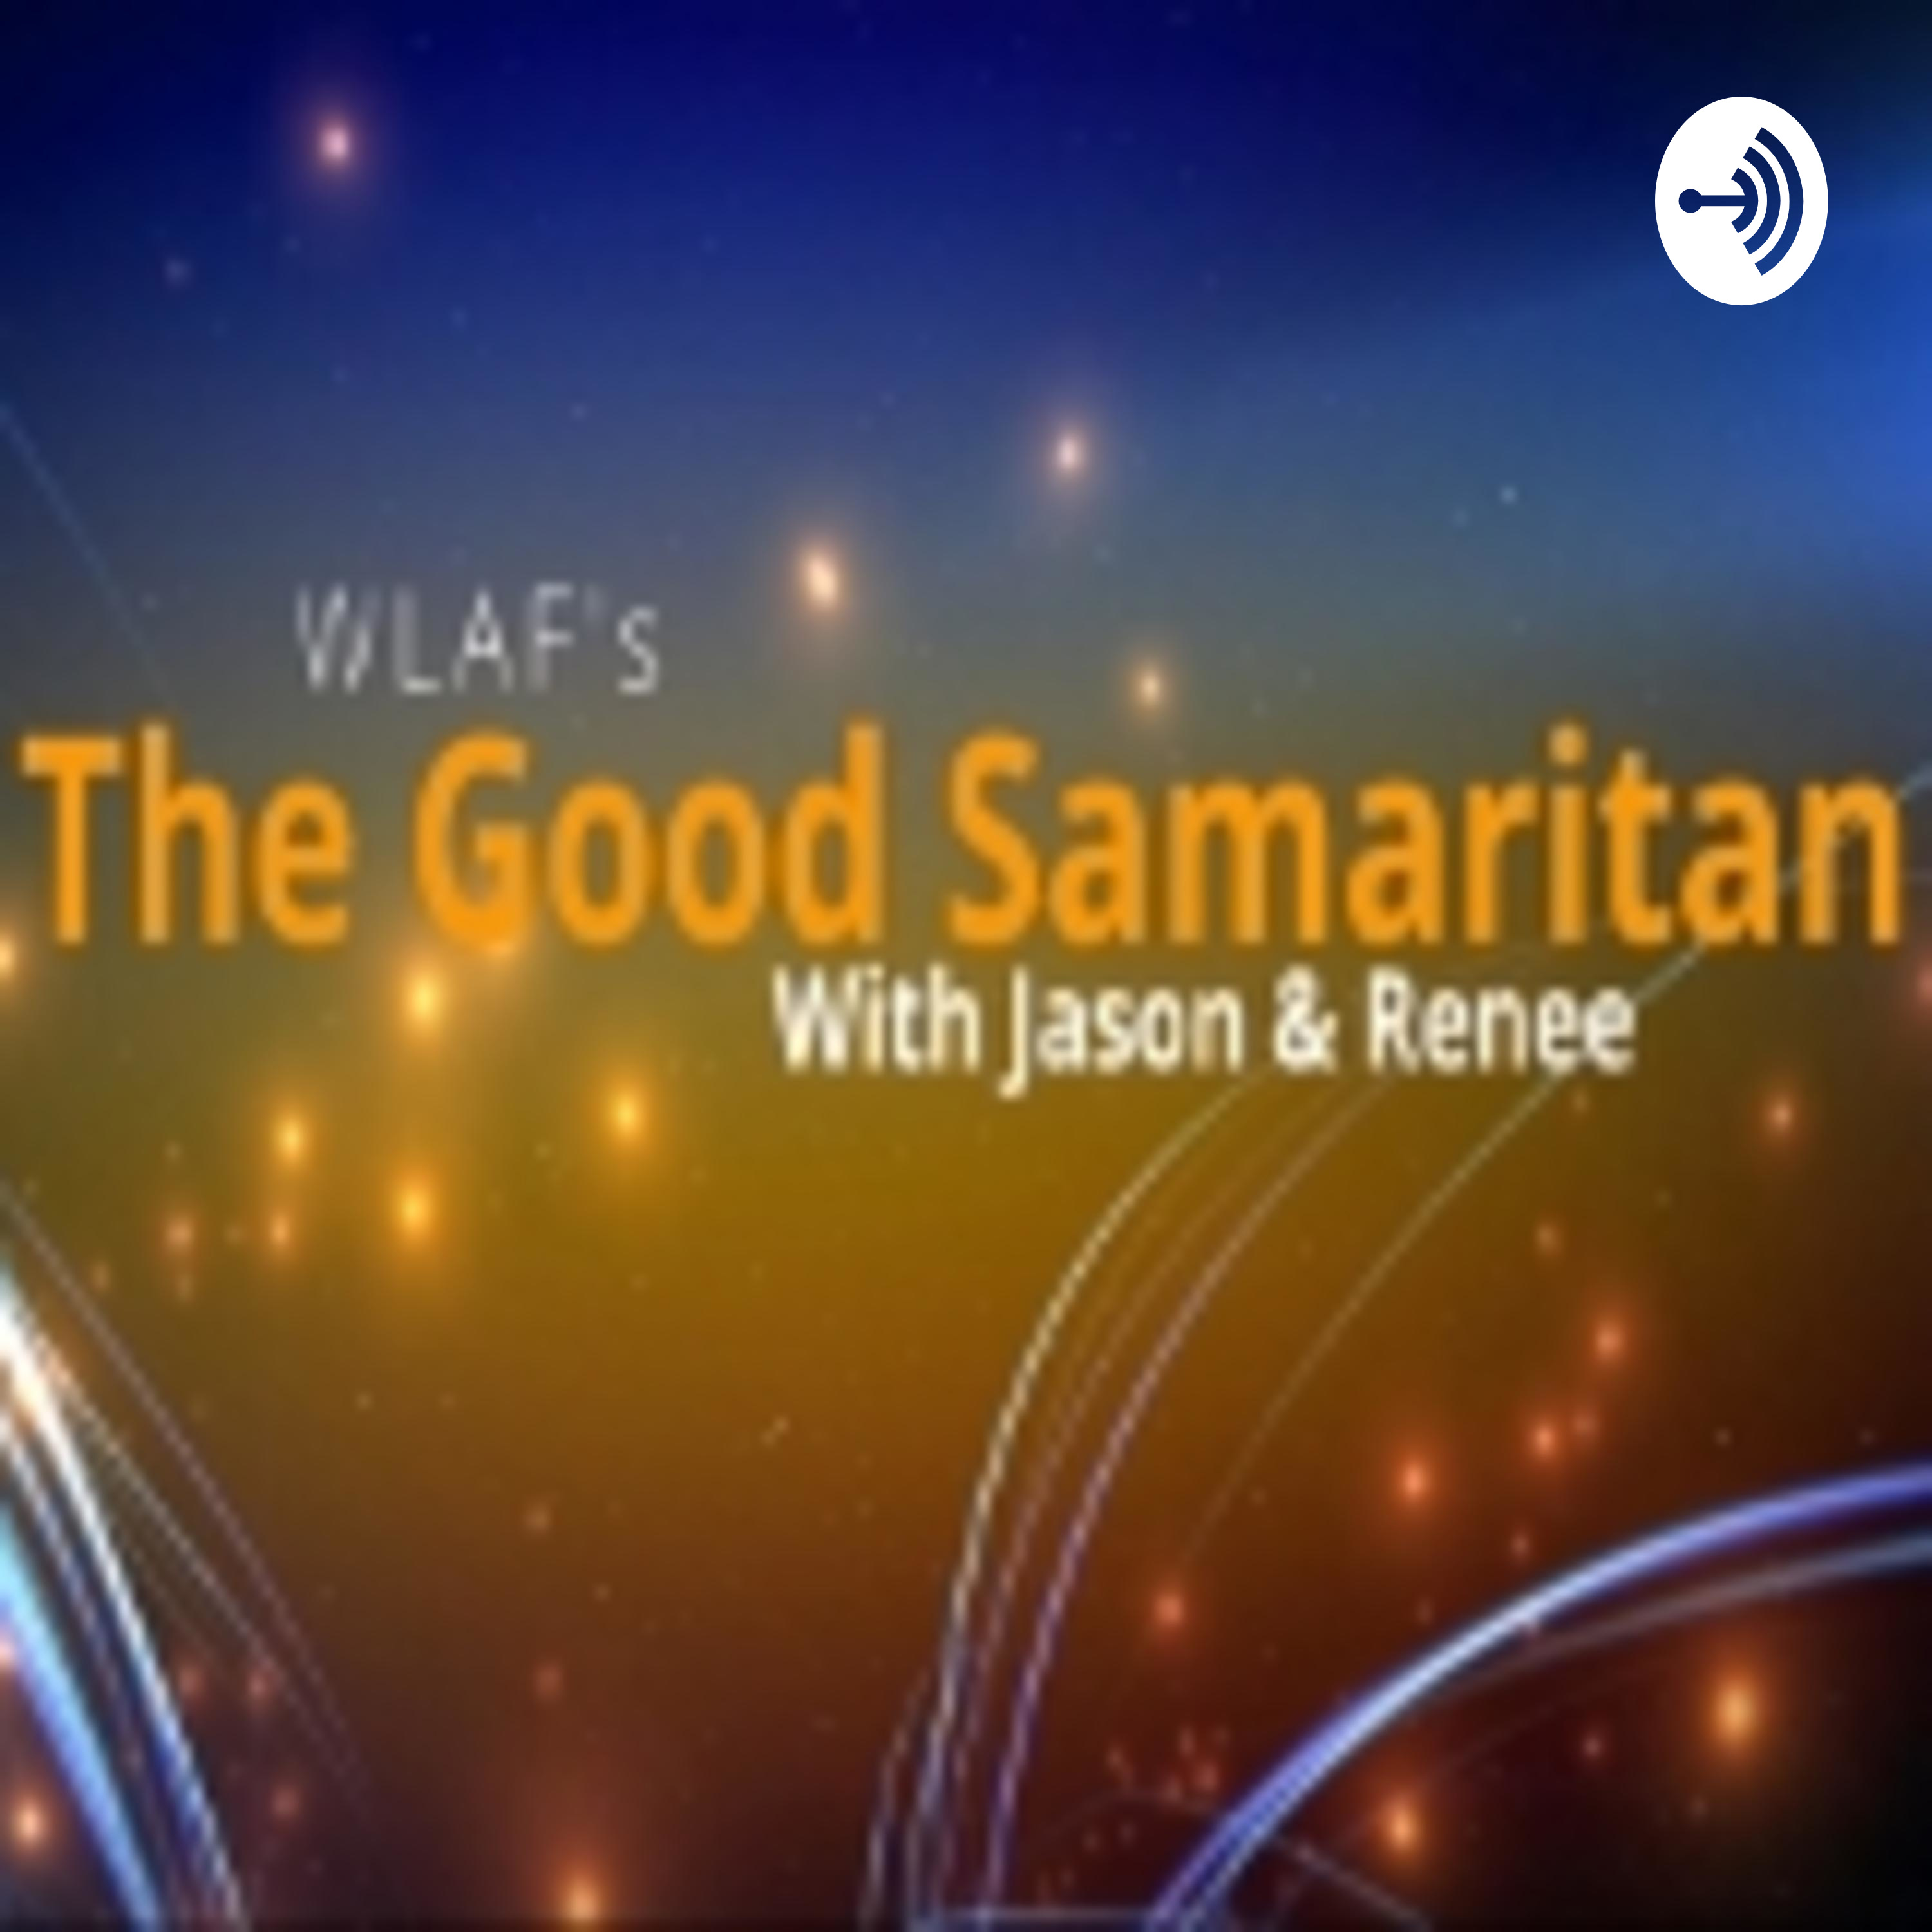 WLAF's The Good Samaritan with Jason and Renee - Zach Sheets